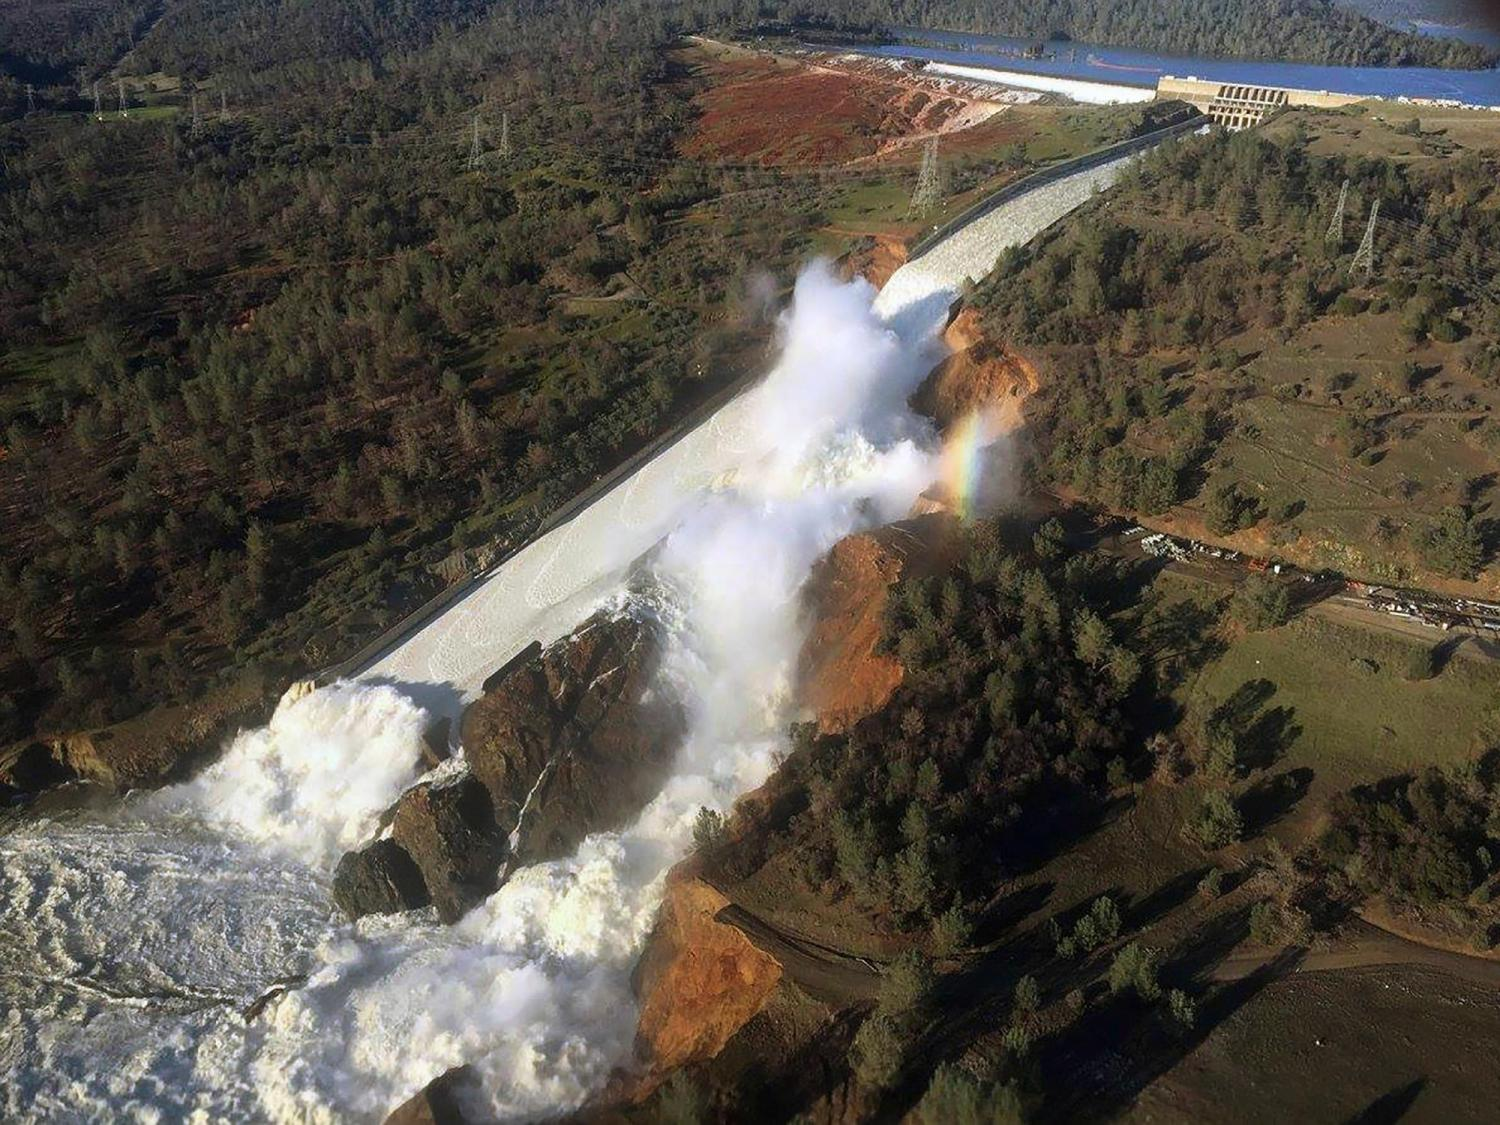 The Oroville Dam on Feb. 11, 2017